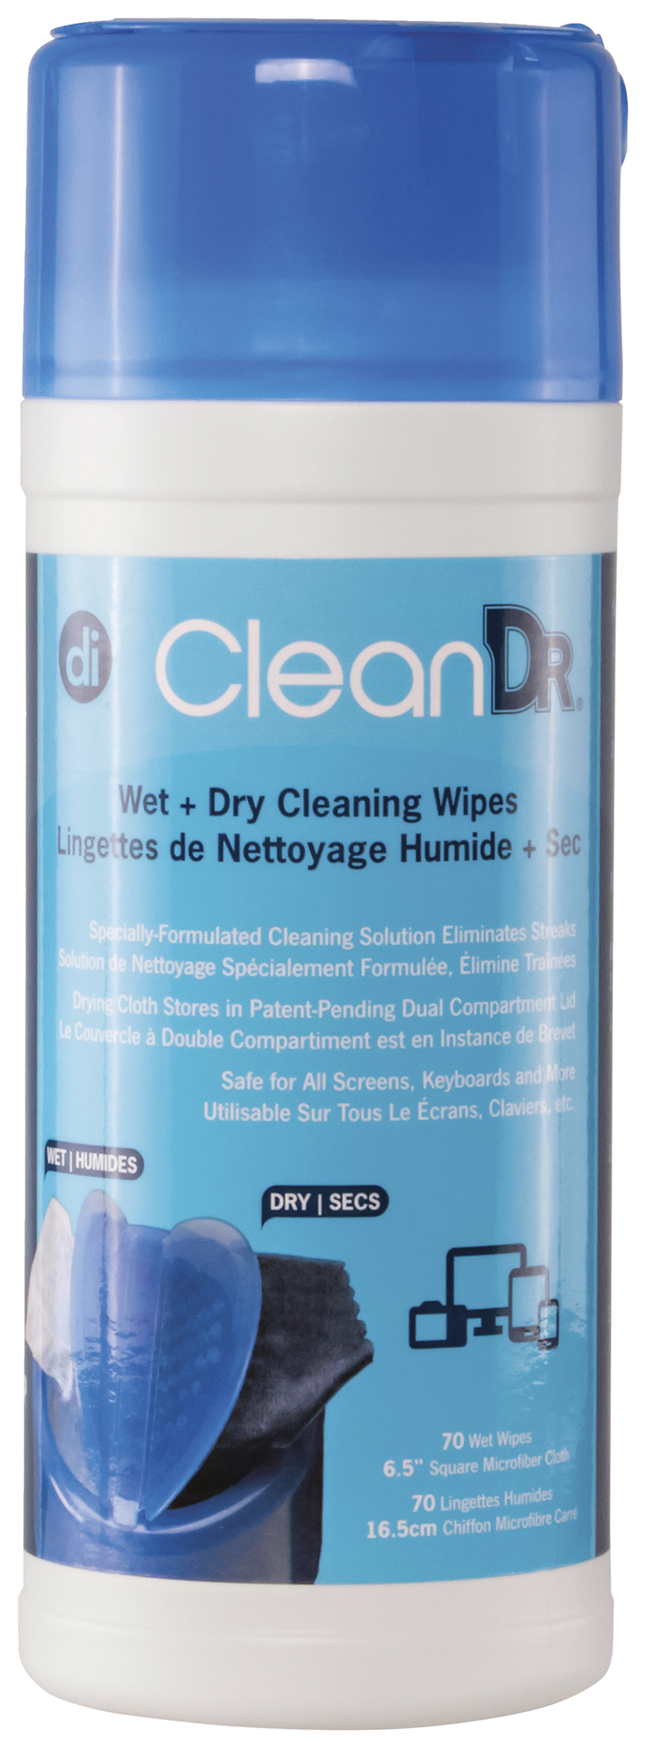 Disinfecting, Sanitizing Wipes, Item Number 2009177